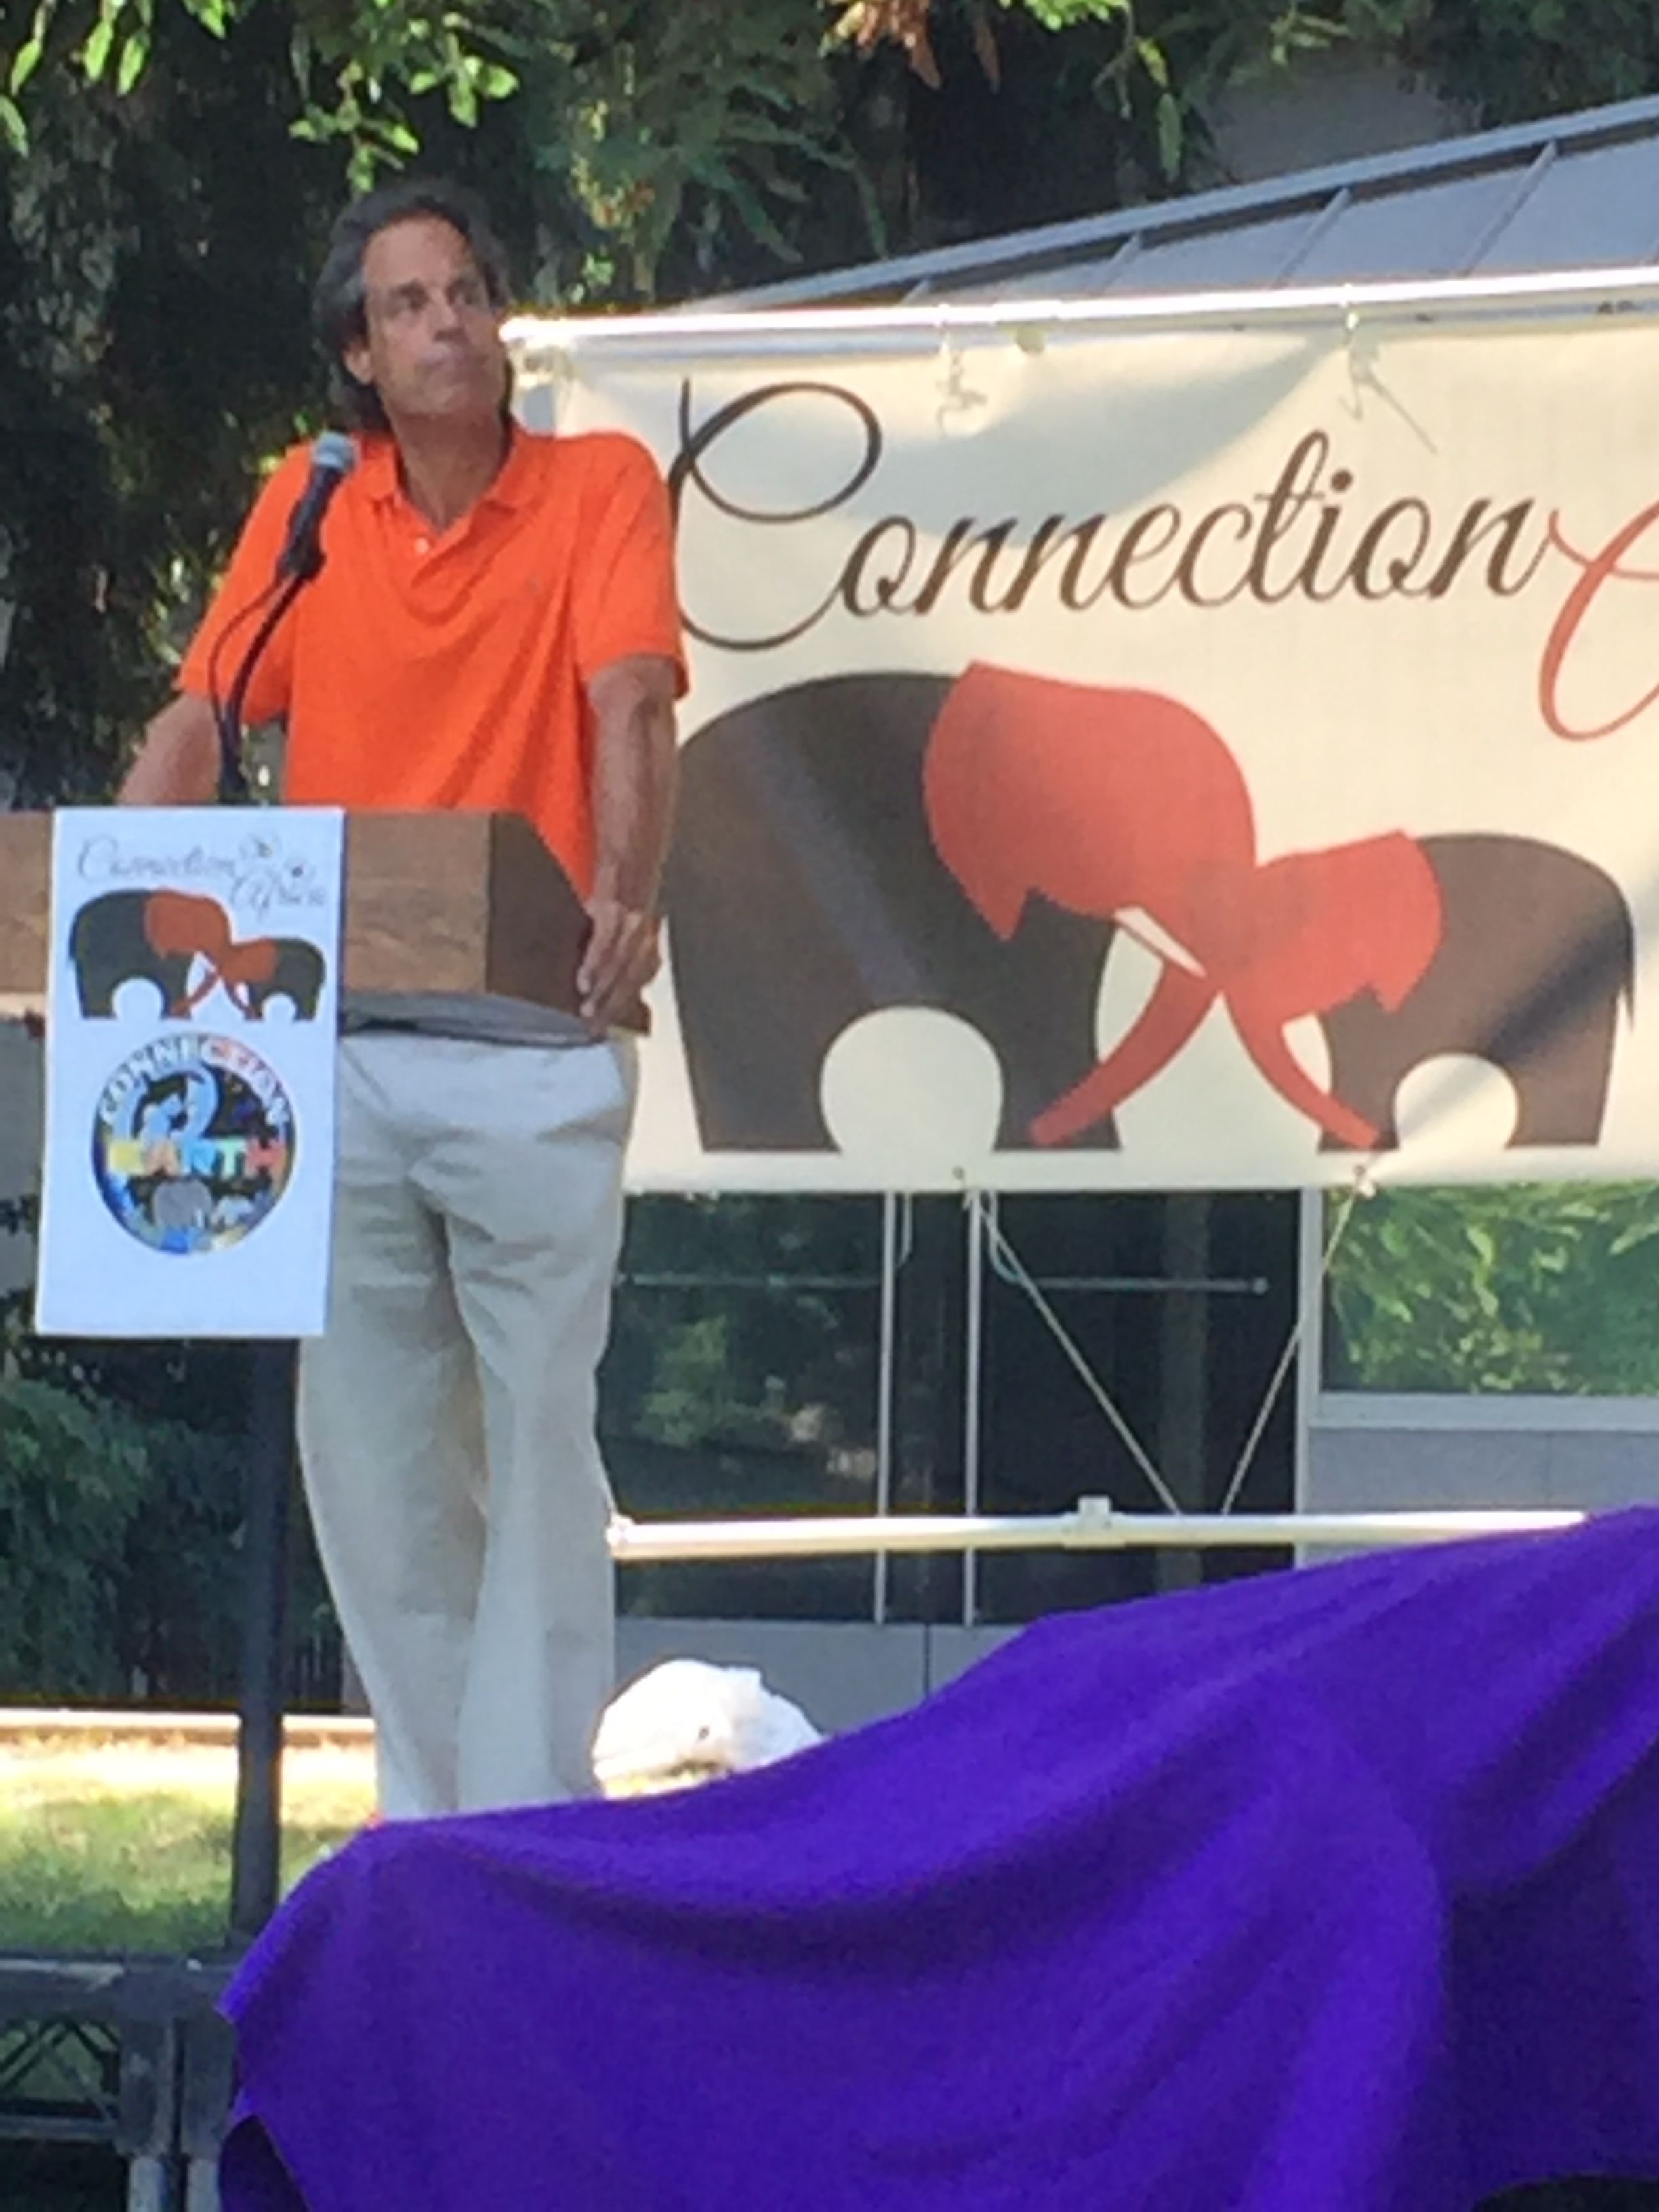 Rallying for the elephants on 12 August 2017, in California's state capital --Sacramento.